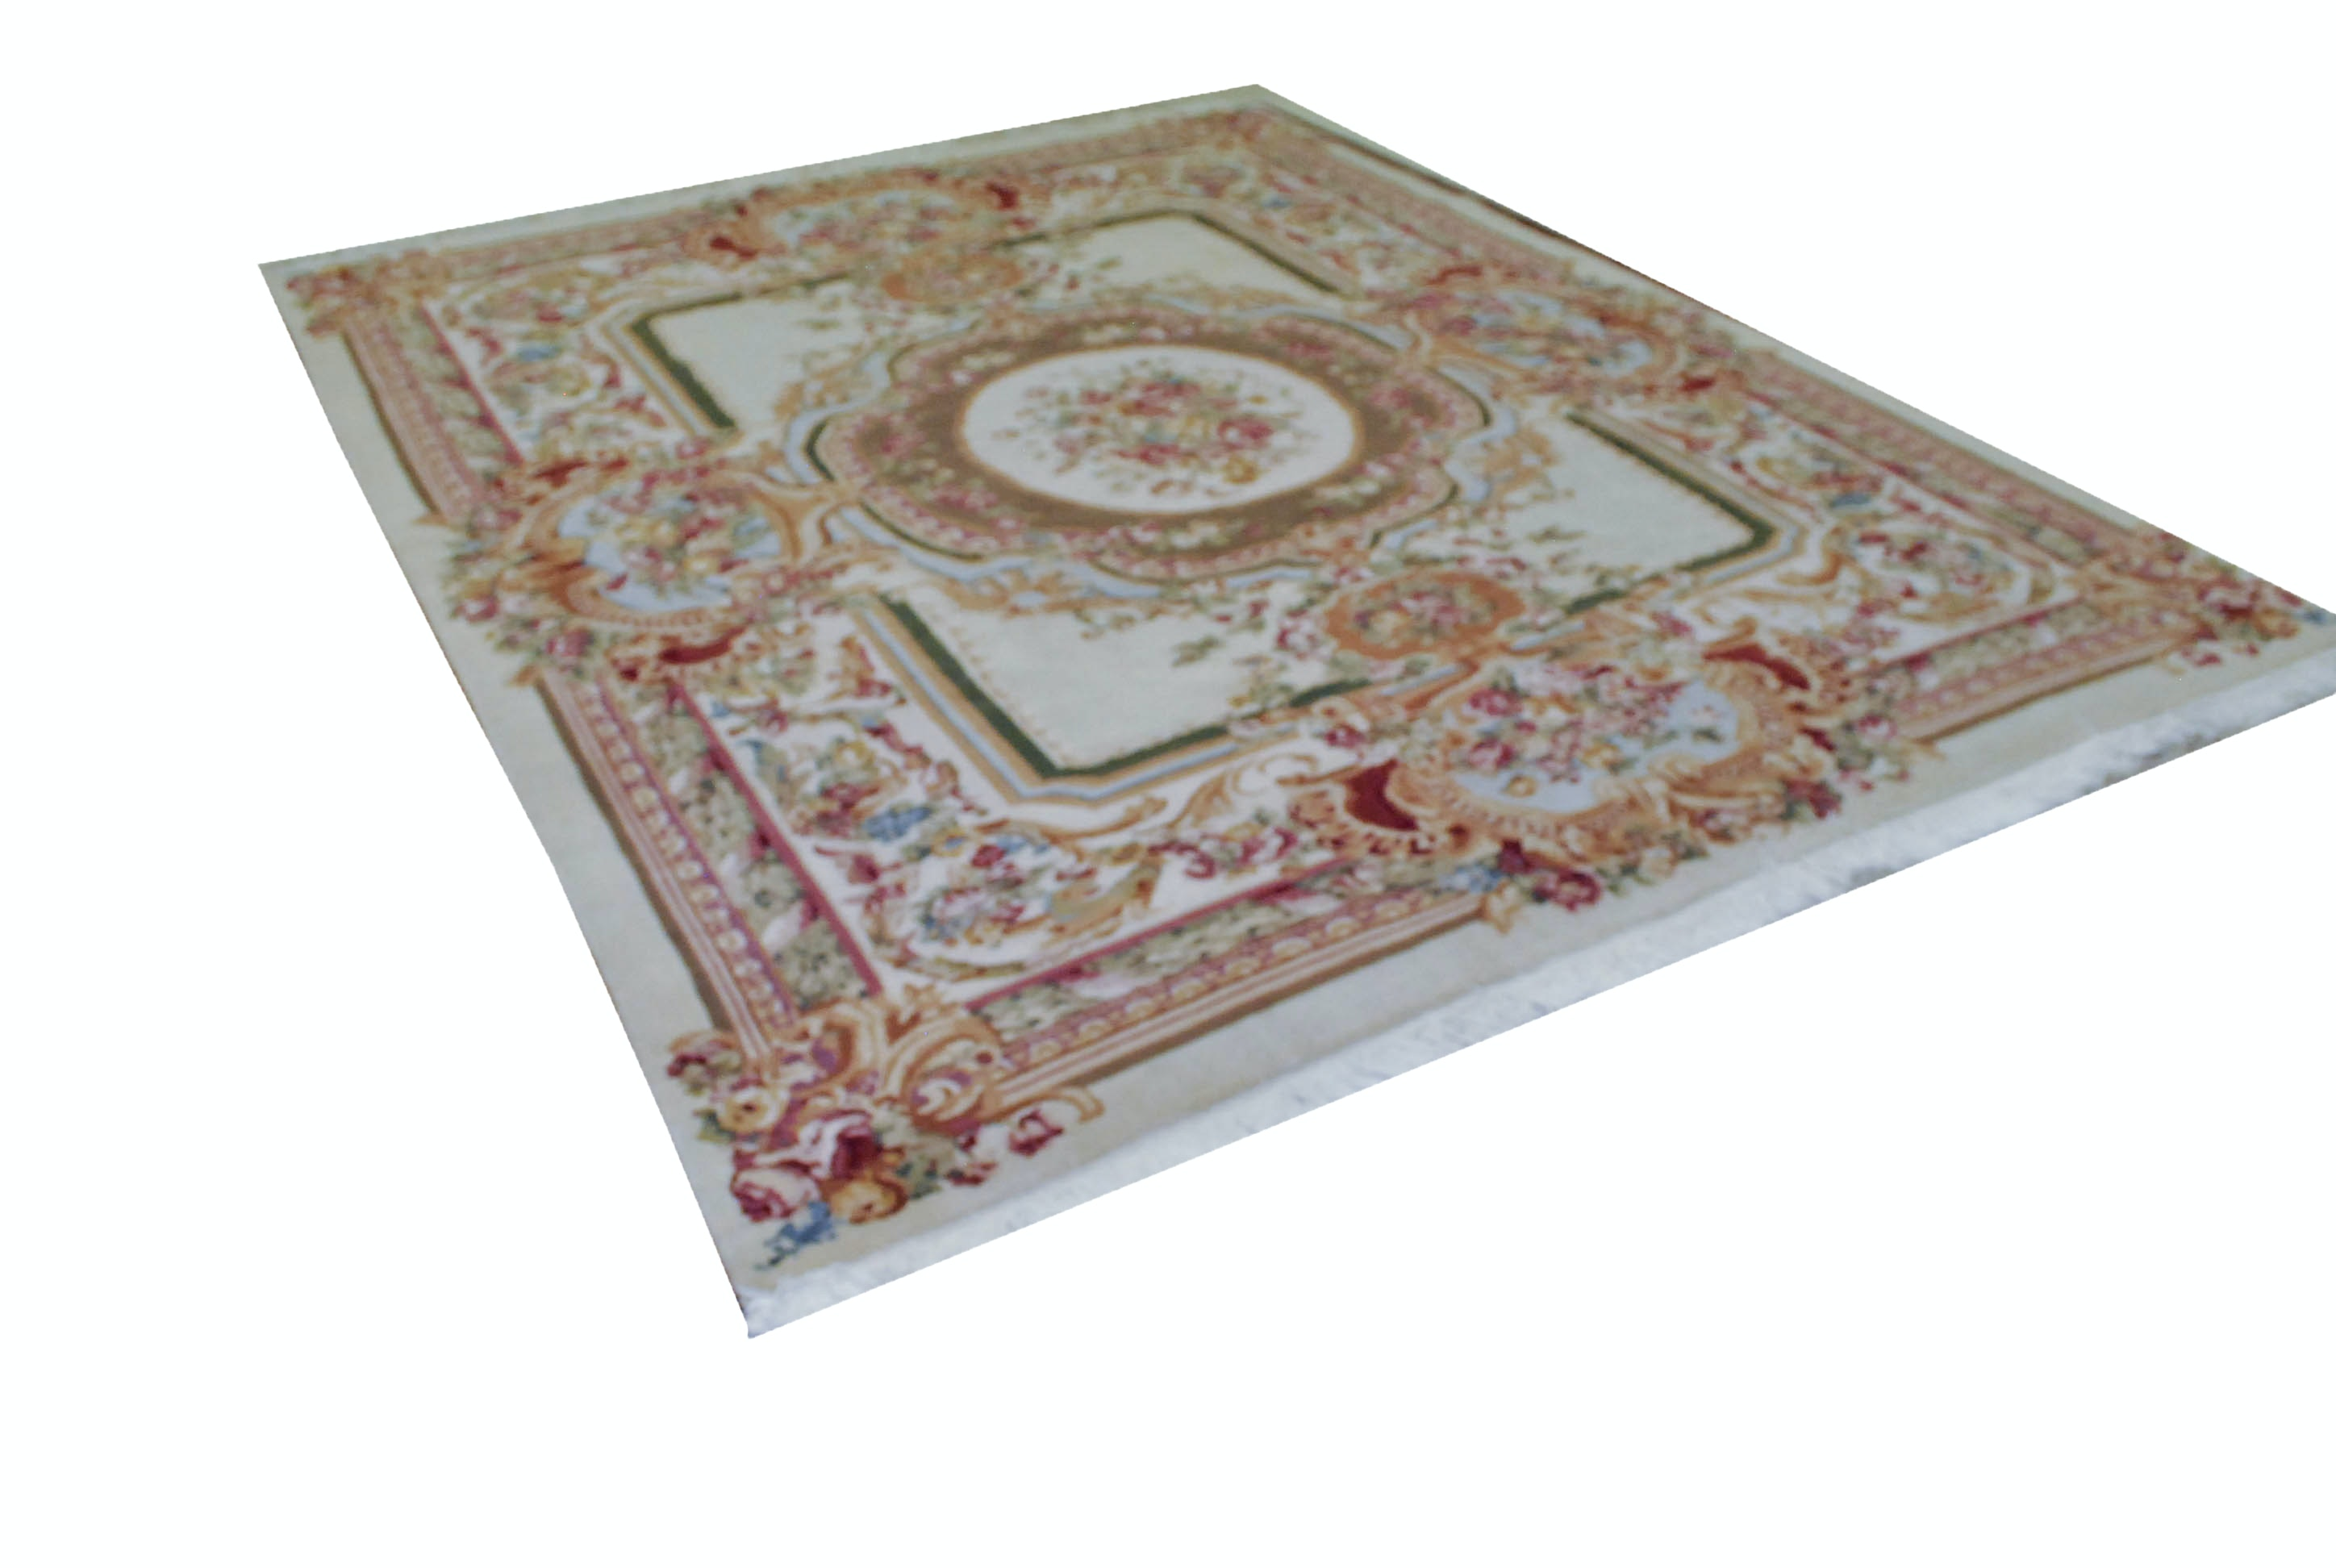 Ornate Handwoven Floral Area Rug